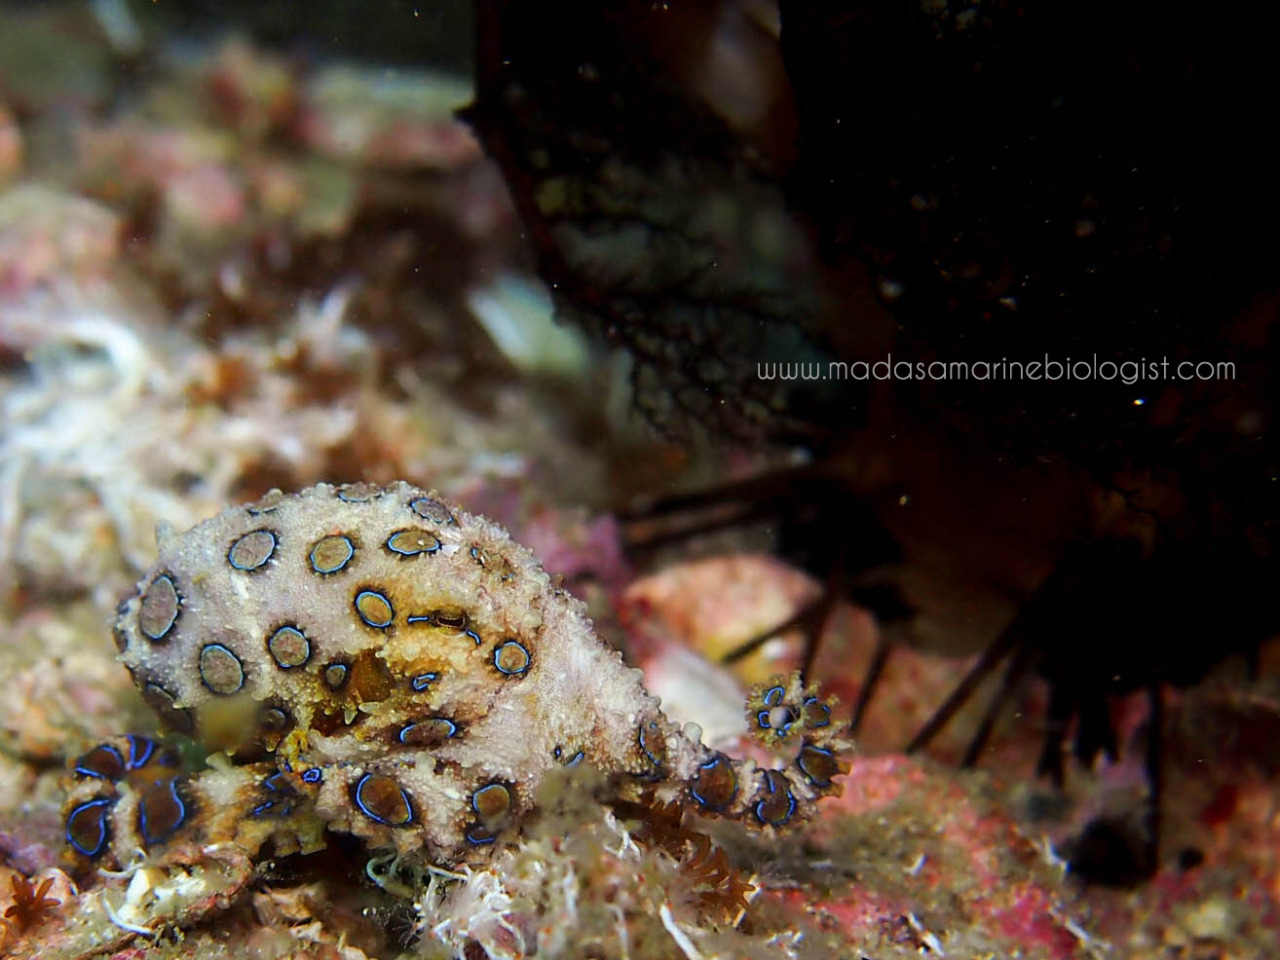 Blue-ringed Octopus by Samantha Craven Gato Island, Malapascua The tiny, yet highly venomous Blue-ringed Octopus (Genus: Hapalochlaena). This individual was about 5cm in size.